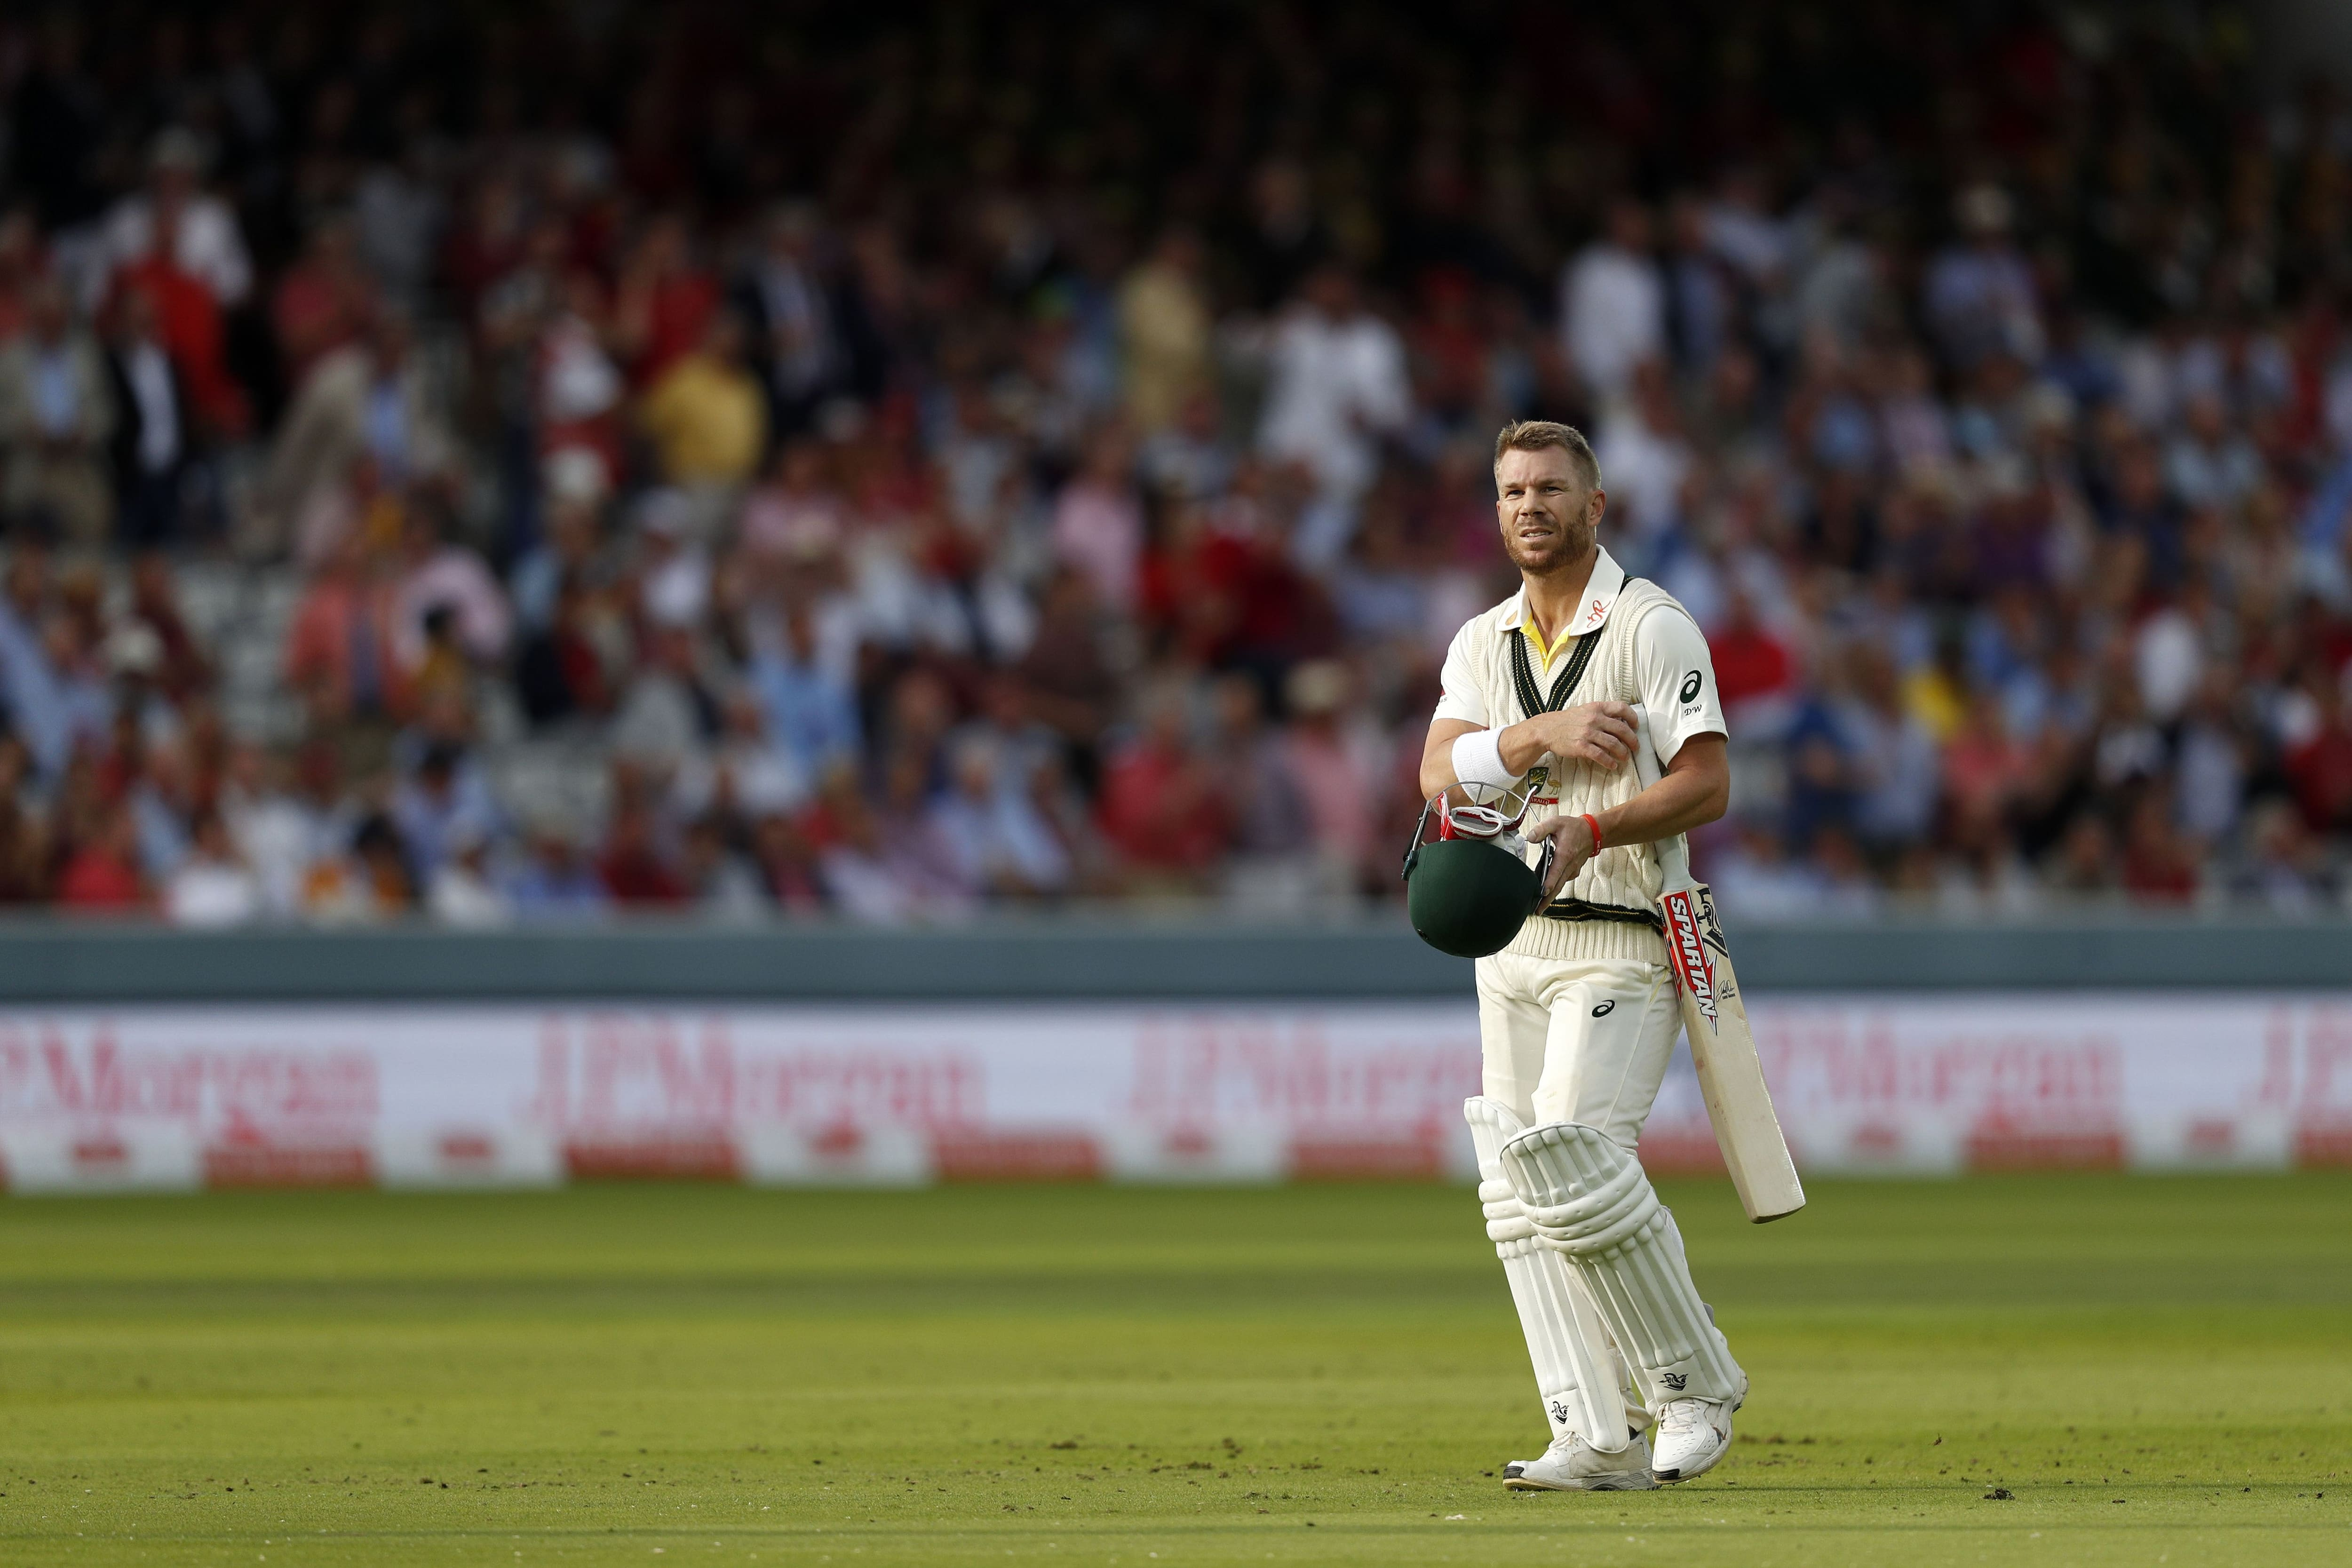 The Ashes 2019: Tim Paine backs David Warner to come good